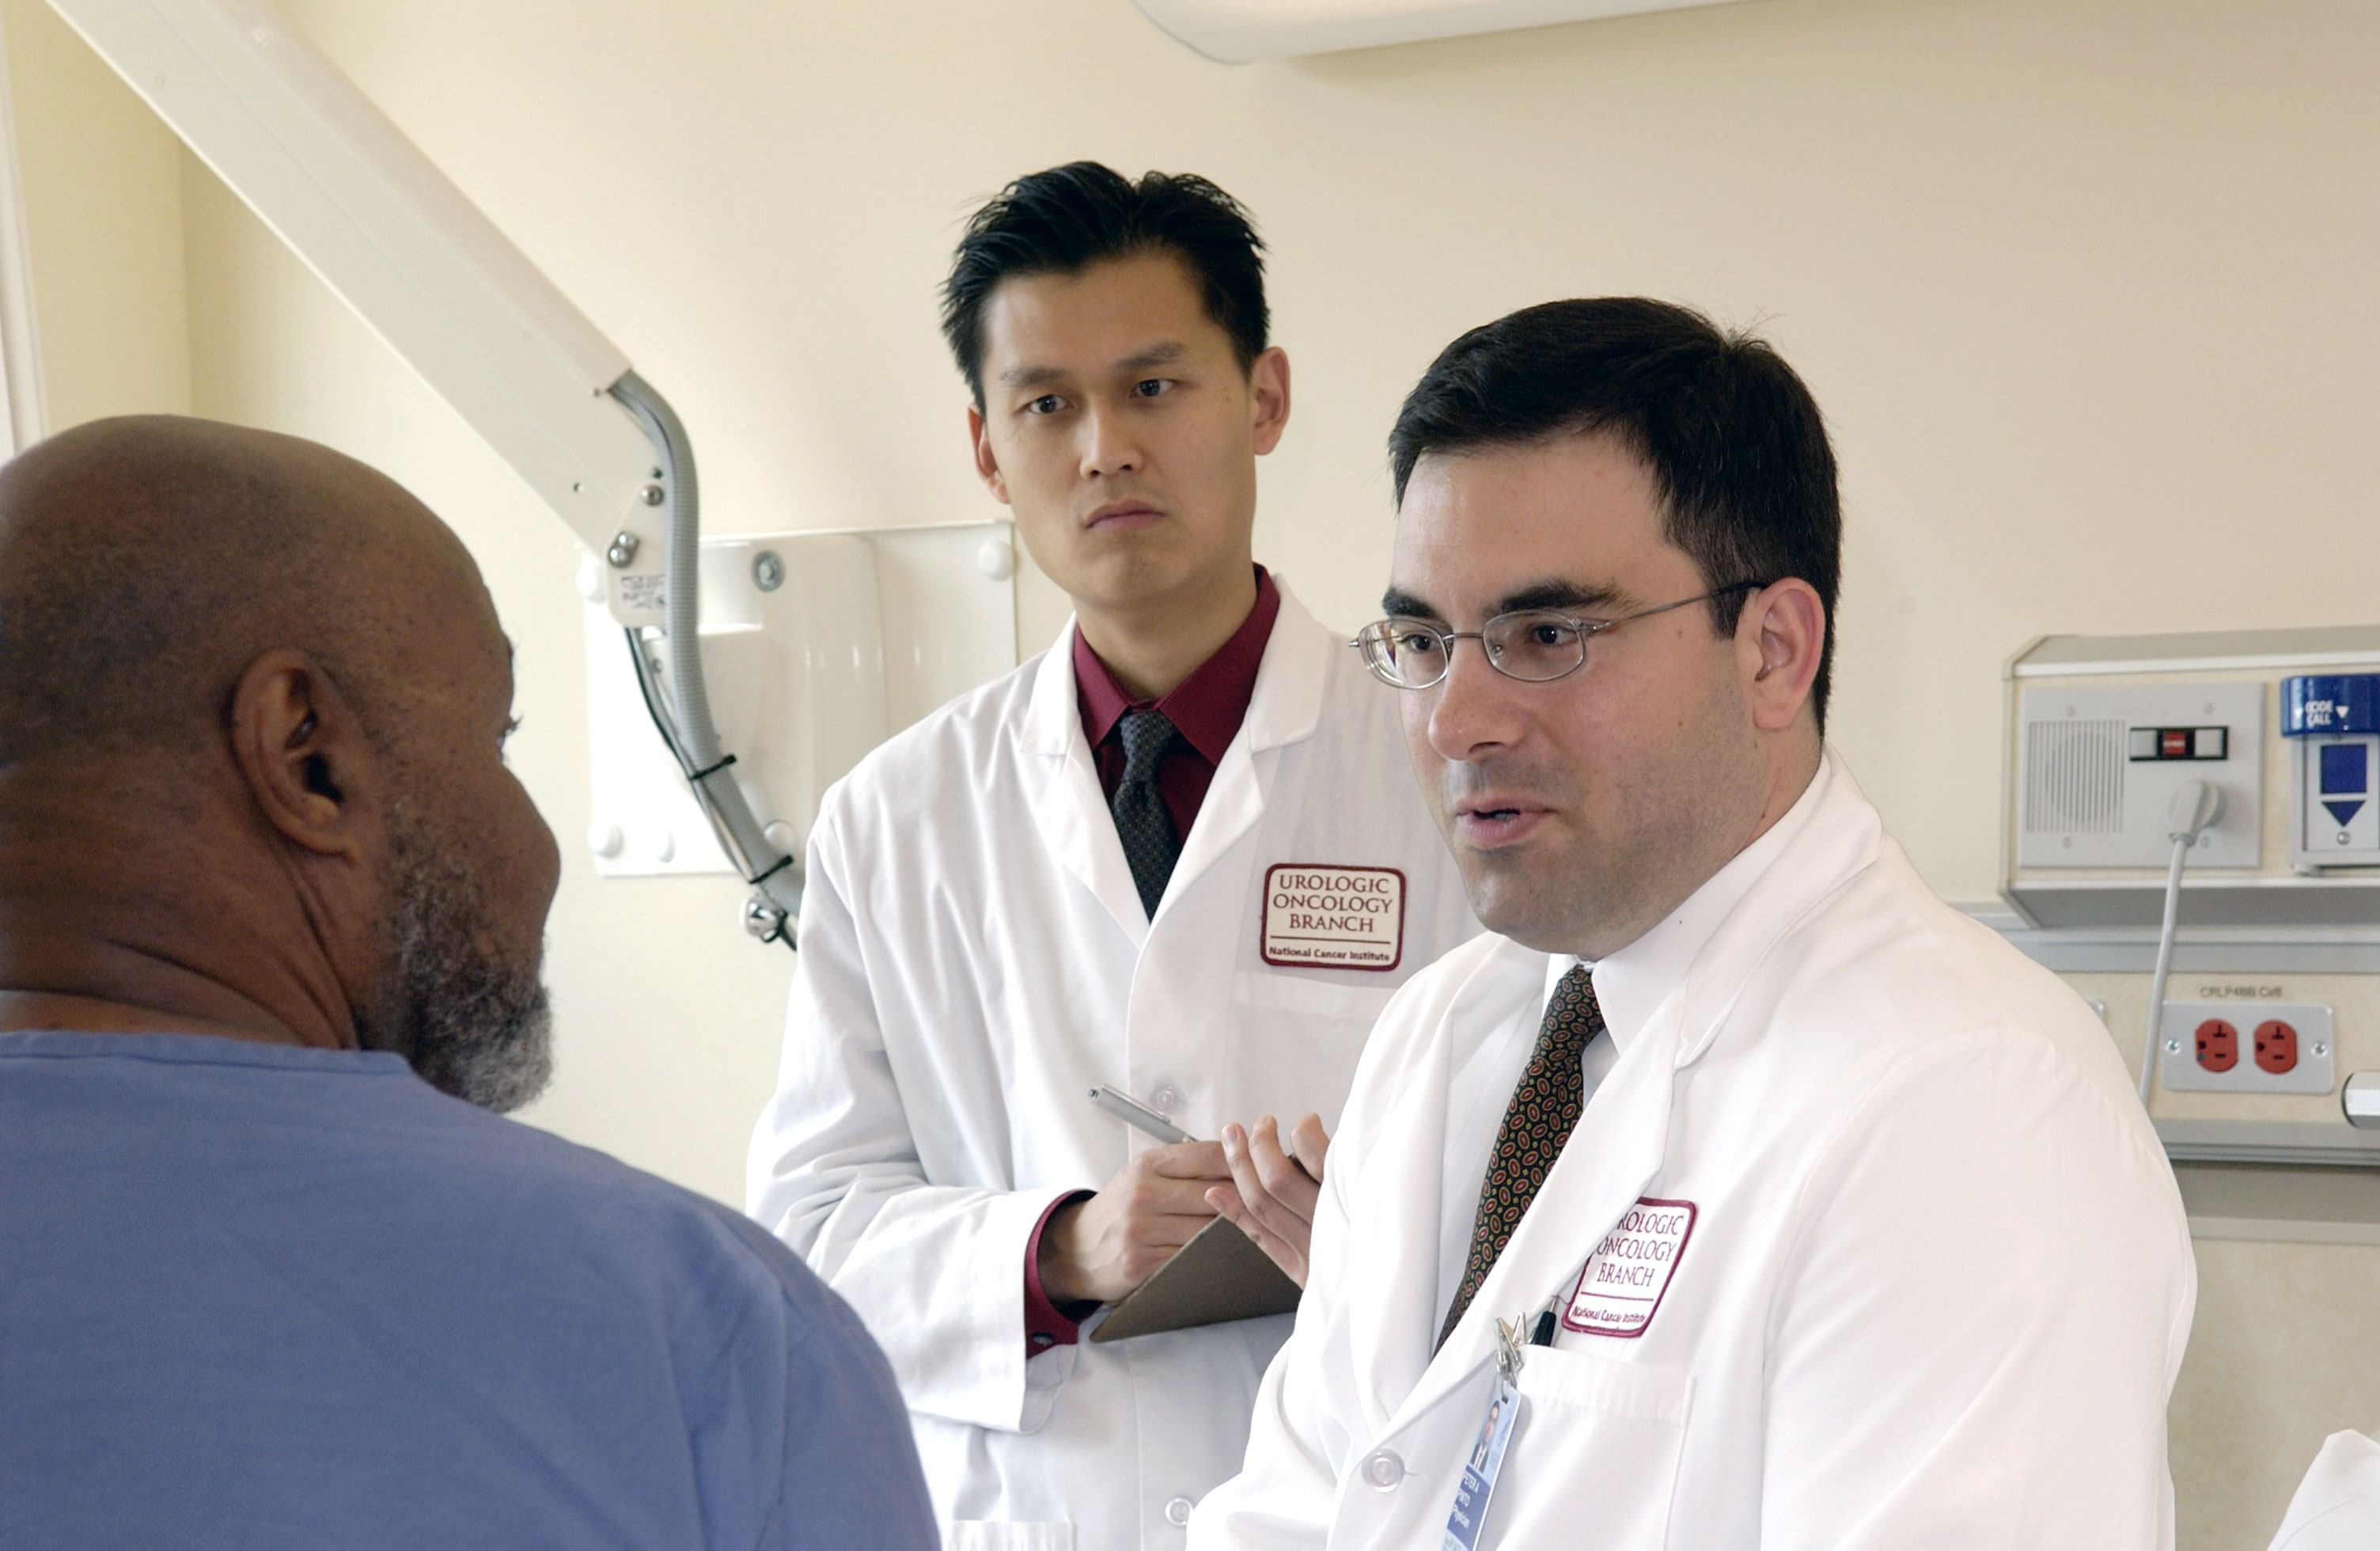 Doctor_consults_with_patient_(4)